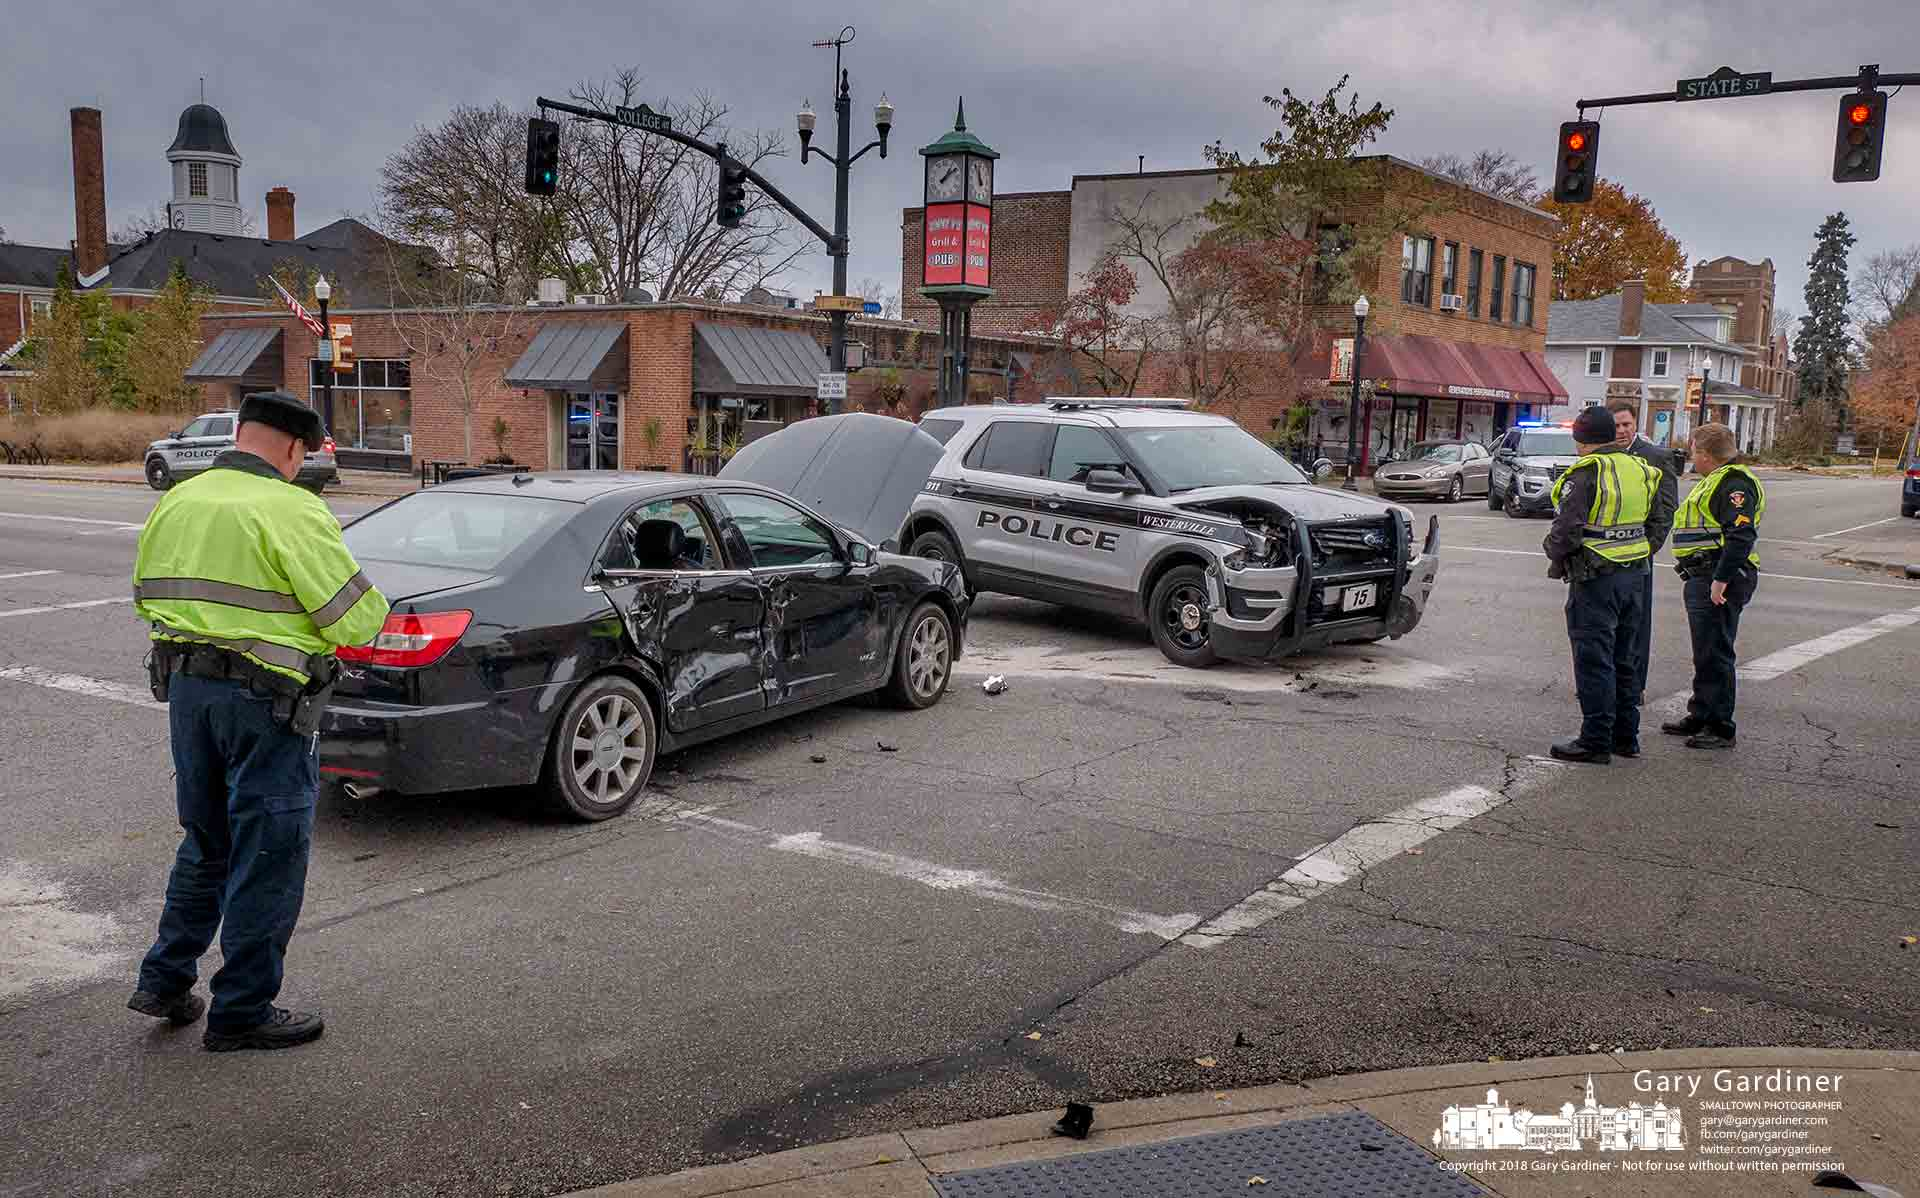 A police officer, at left, photographs the scene of a police cruiser crash at State and College during an emergency run. My Final Photo for Nov. 14, 2018.